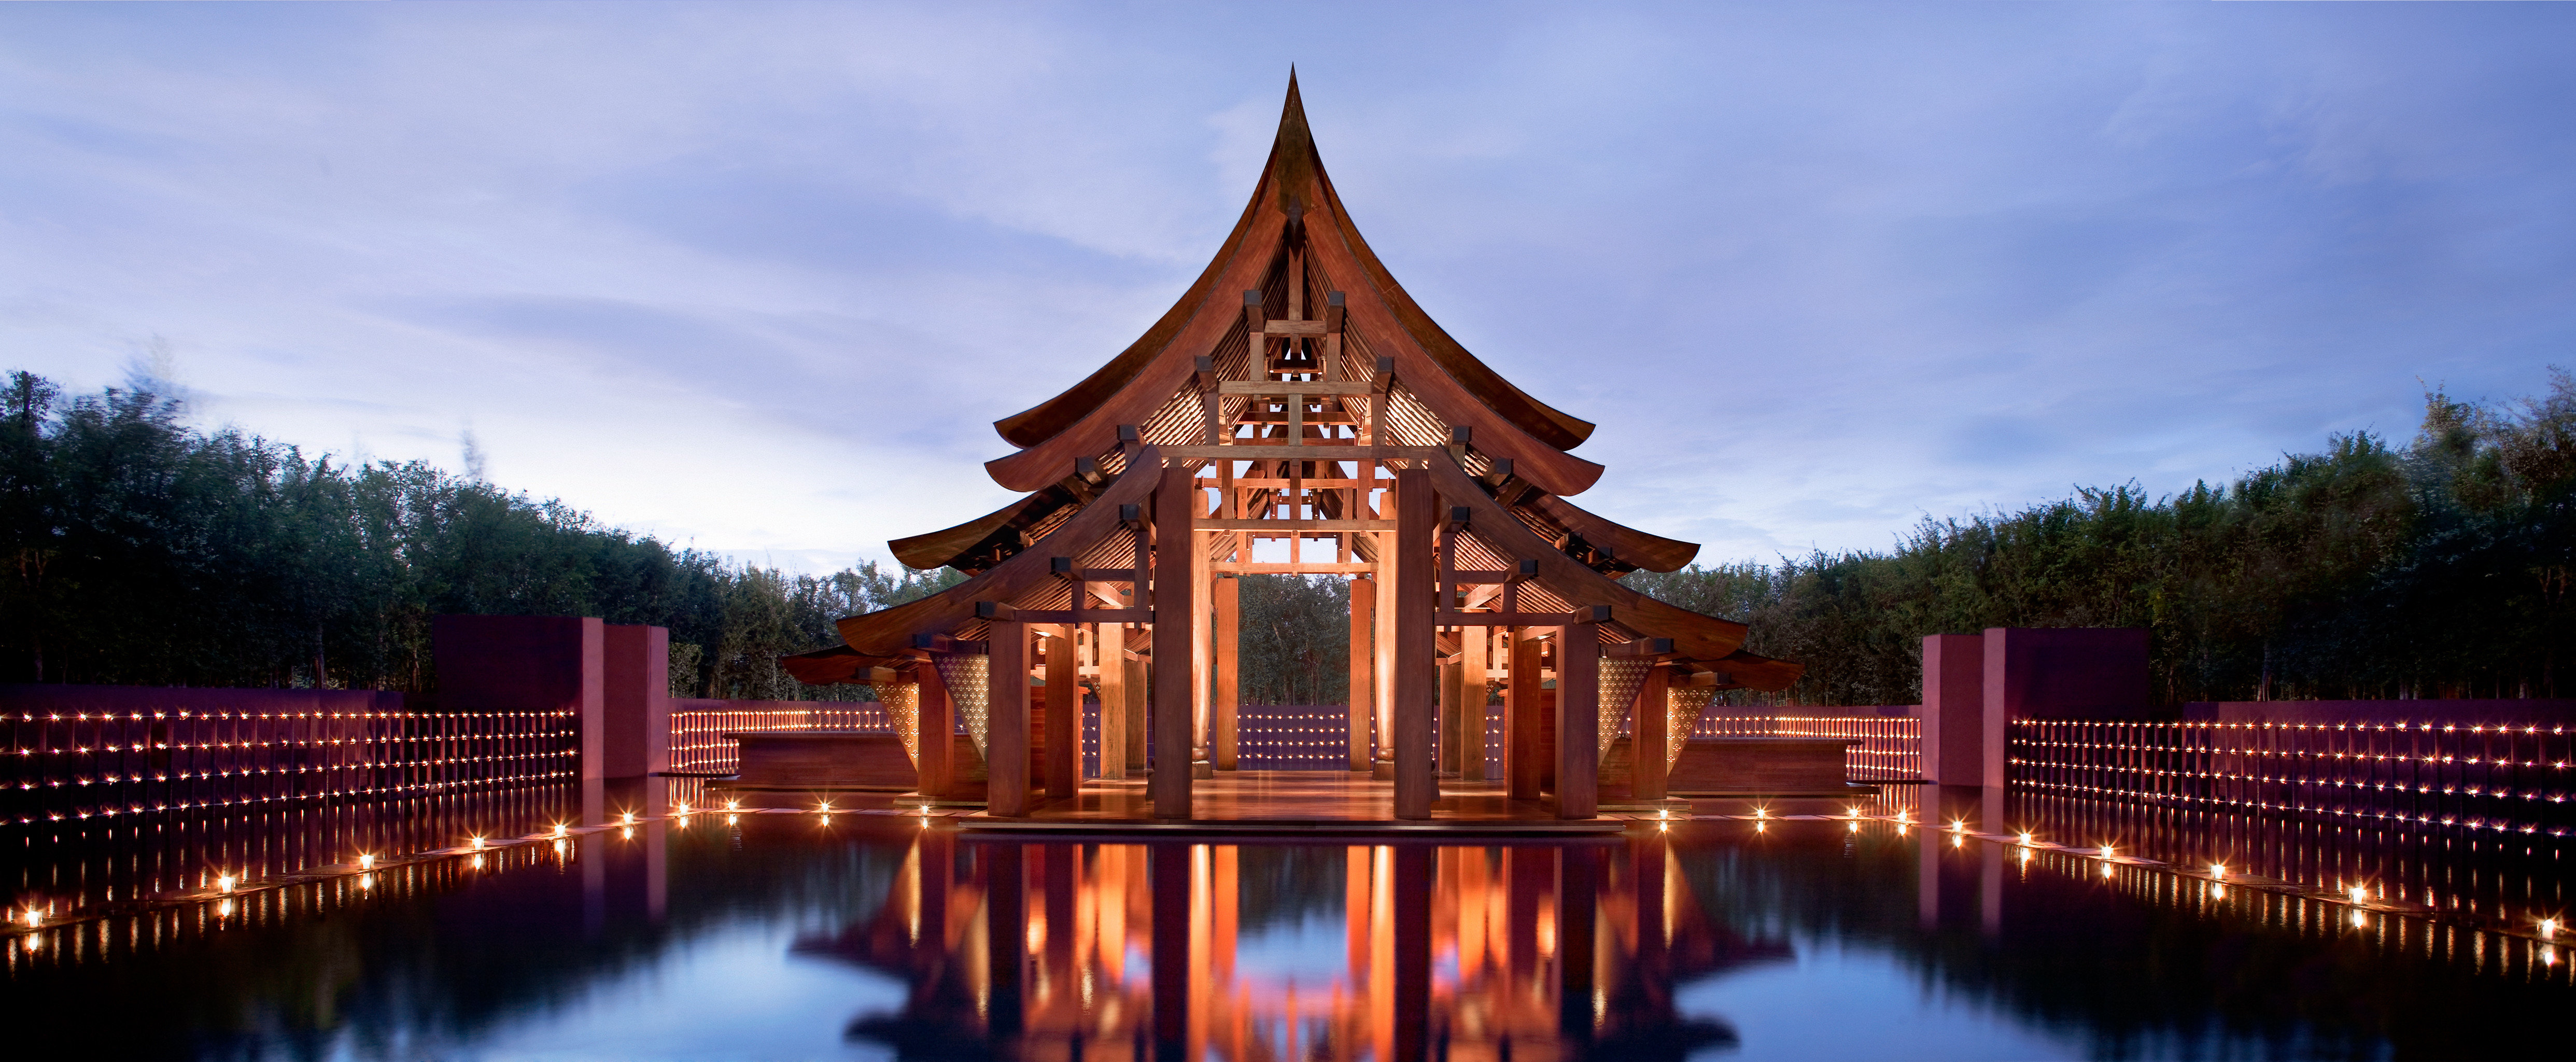 Beachfront Cultural Grounds Honeymoon Influencers + Tastemakers Jungle Nature Pool Romance Romantic Scenic views Travel Shop Trip Ideas Tropical outdoor sky water landmark reflection building night evening place of worship temple shrine